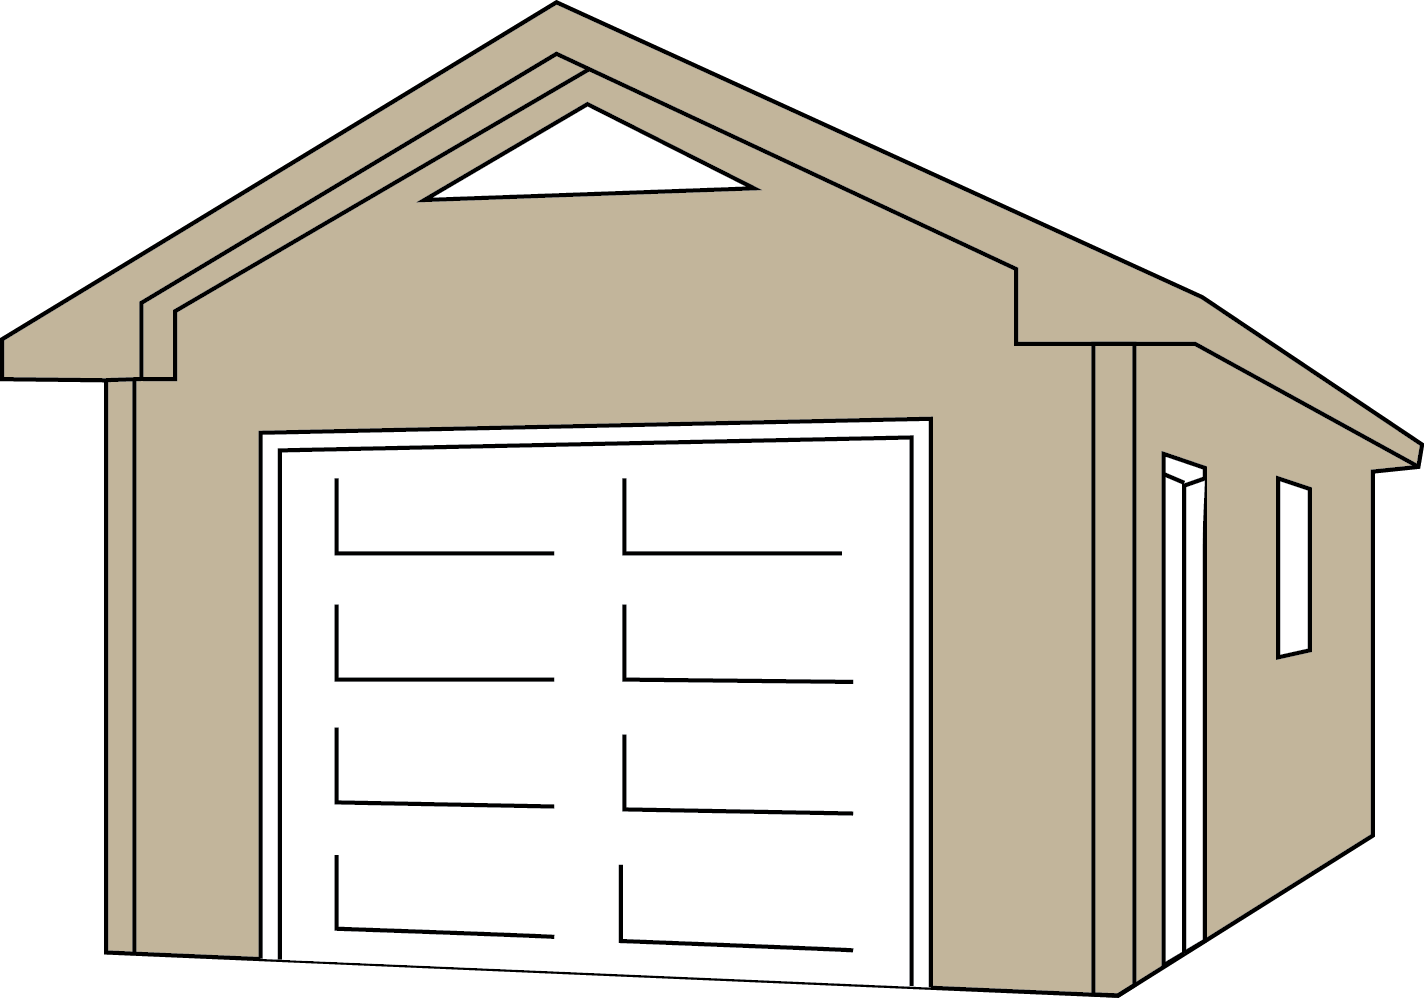 shack drawing wooden